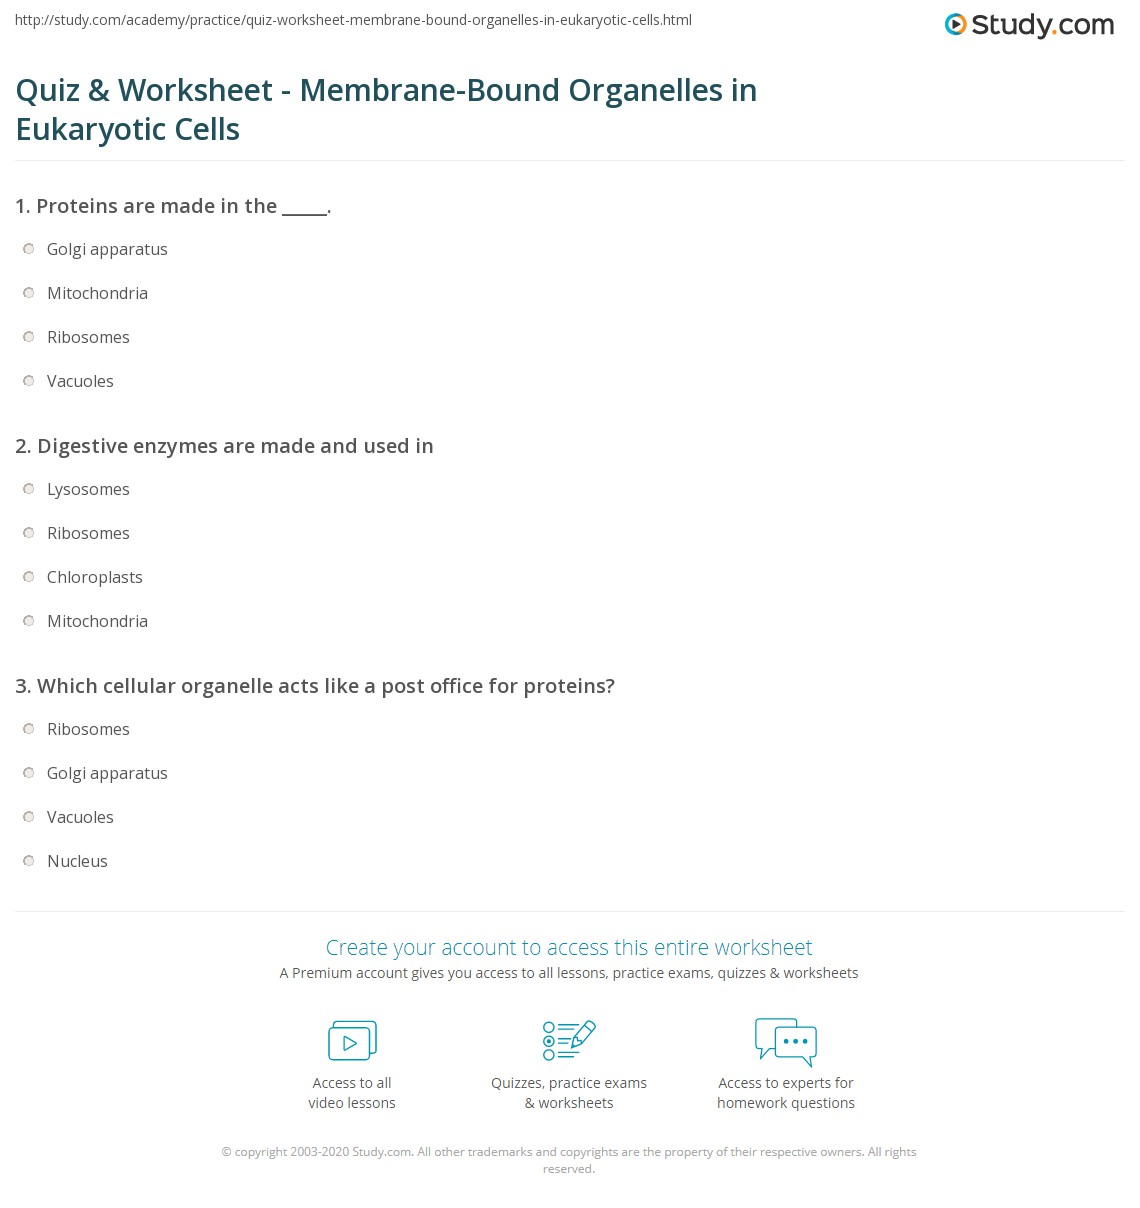 Organelles of cells moreover Quiz   Worksheet   Memne Bound Organelles in Eukaryotic Cells further Eukaryotic cell questions  practice    Cells   Khan Academy together with Cell Organelle Chart Name Prokaryotic  Description likewise Cell Organelle Structure   Function   Color by Number   TpT in addition  as well Cell Organelles Student Handout together with Prokaryotic and Eukaryotic Cells Worksheet 24 Super Cell organelles in addition paring Prokaryotic and Eukaryotic Cells   Biology for Majors II likewise pare And Cells Google Search  parison Chart Between Prokaryotic also  further eukaryotic cell structure and function chart Google Search as well Endosymbiotic Theory   Ask A Biologist likewise Eukaryotic Cell Structure  Organelles in Animal also Memne Bound Organelles in Eukaryotic Cells   Video   Lesson additionally Eukaryotes VS Prokaryotes  Cell Structure and Differences Under the. on organelles in eukaryotic cells worksheet